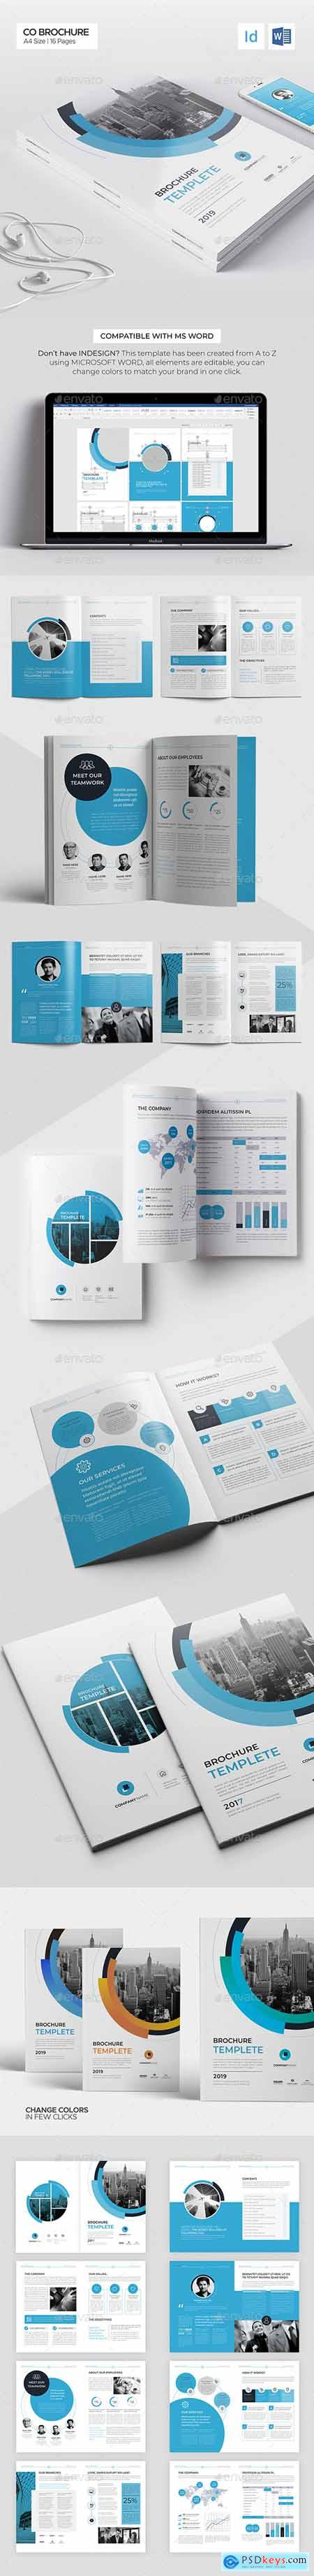 Company Brochure, Word Template, 16 Pages 25283909